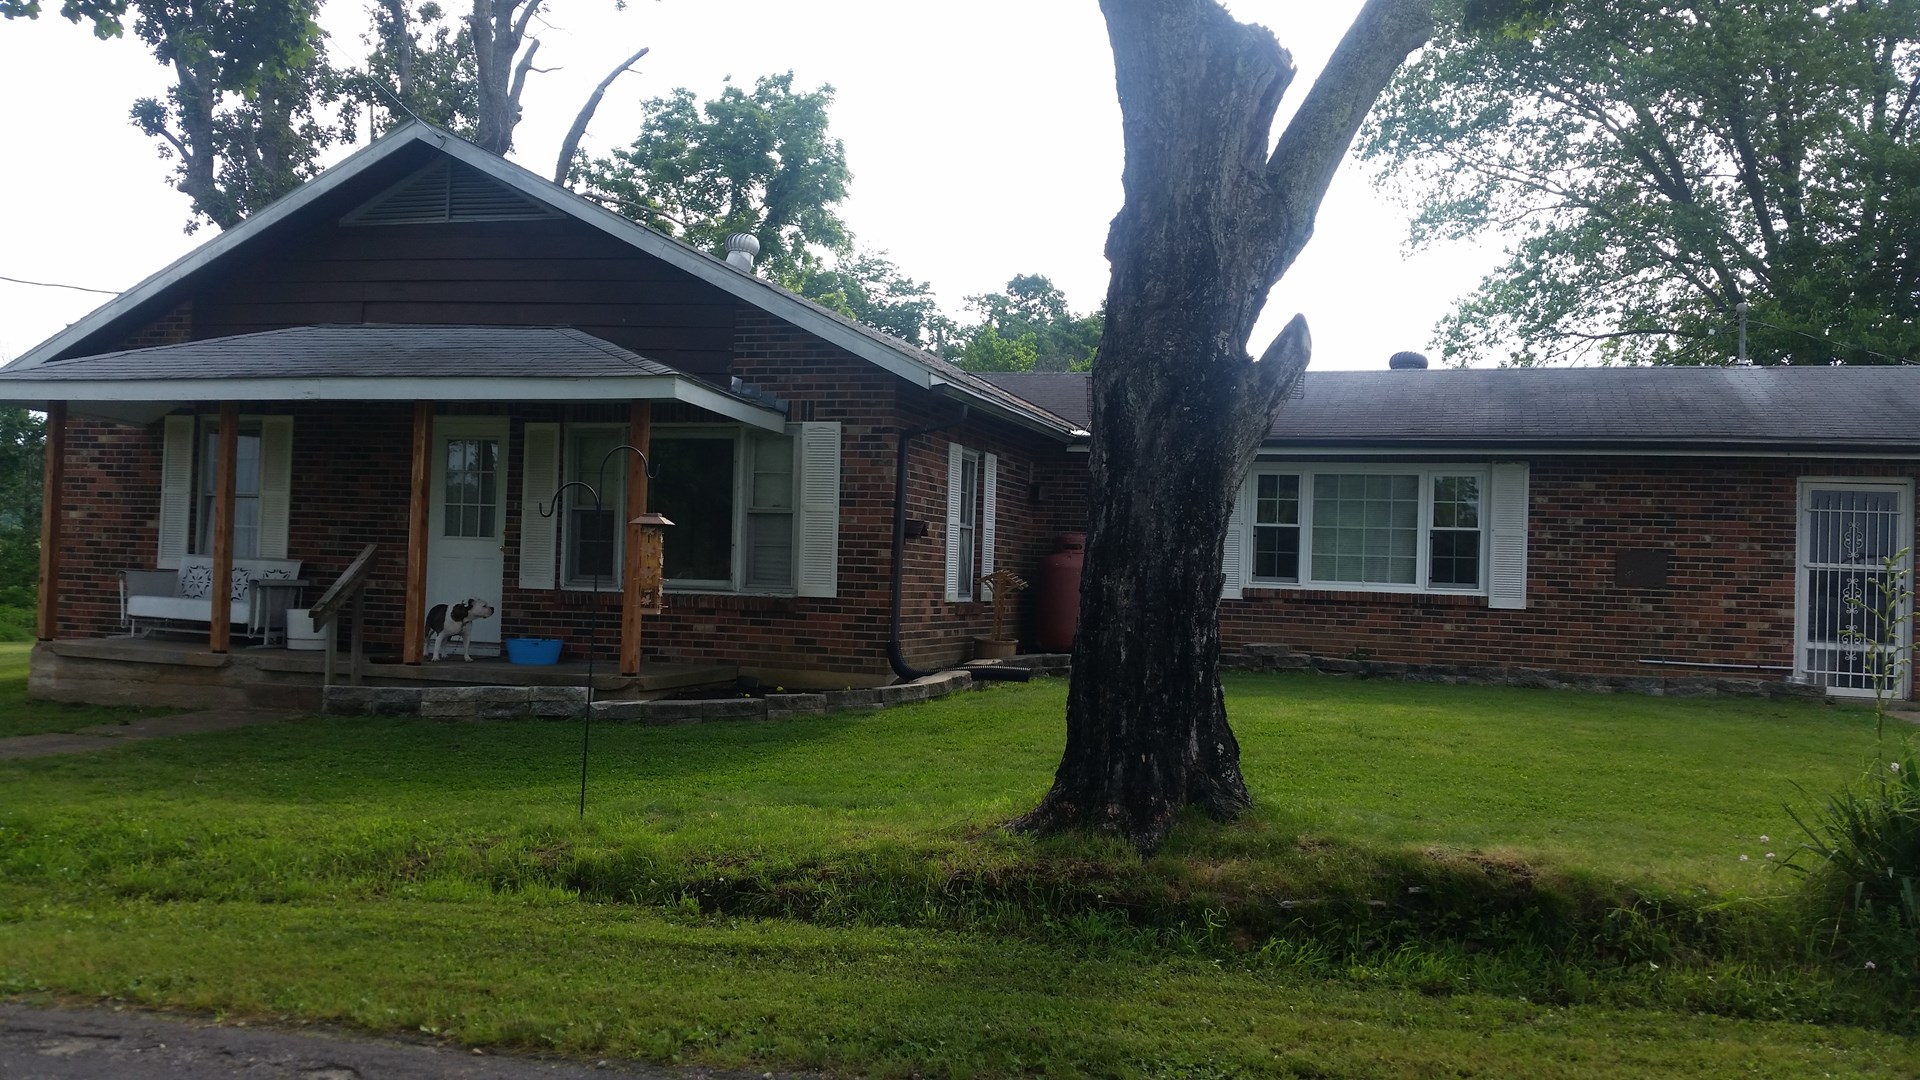 For Sale:  2Bedroom 1 1/2 bath brick  home on 1.93 acres